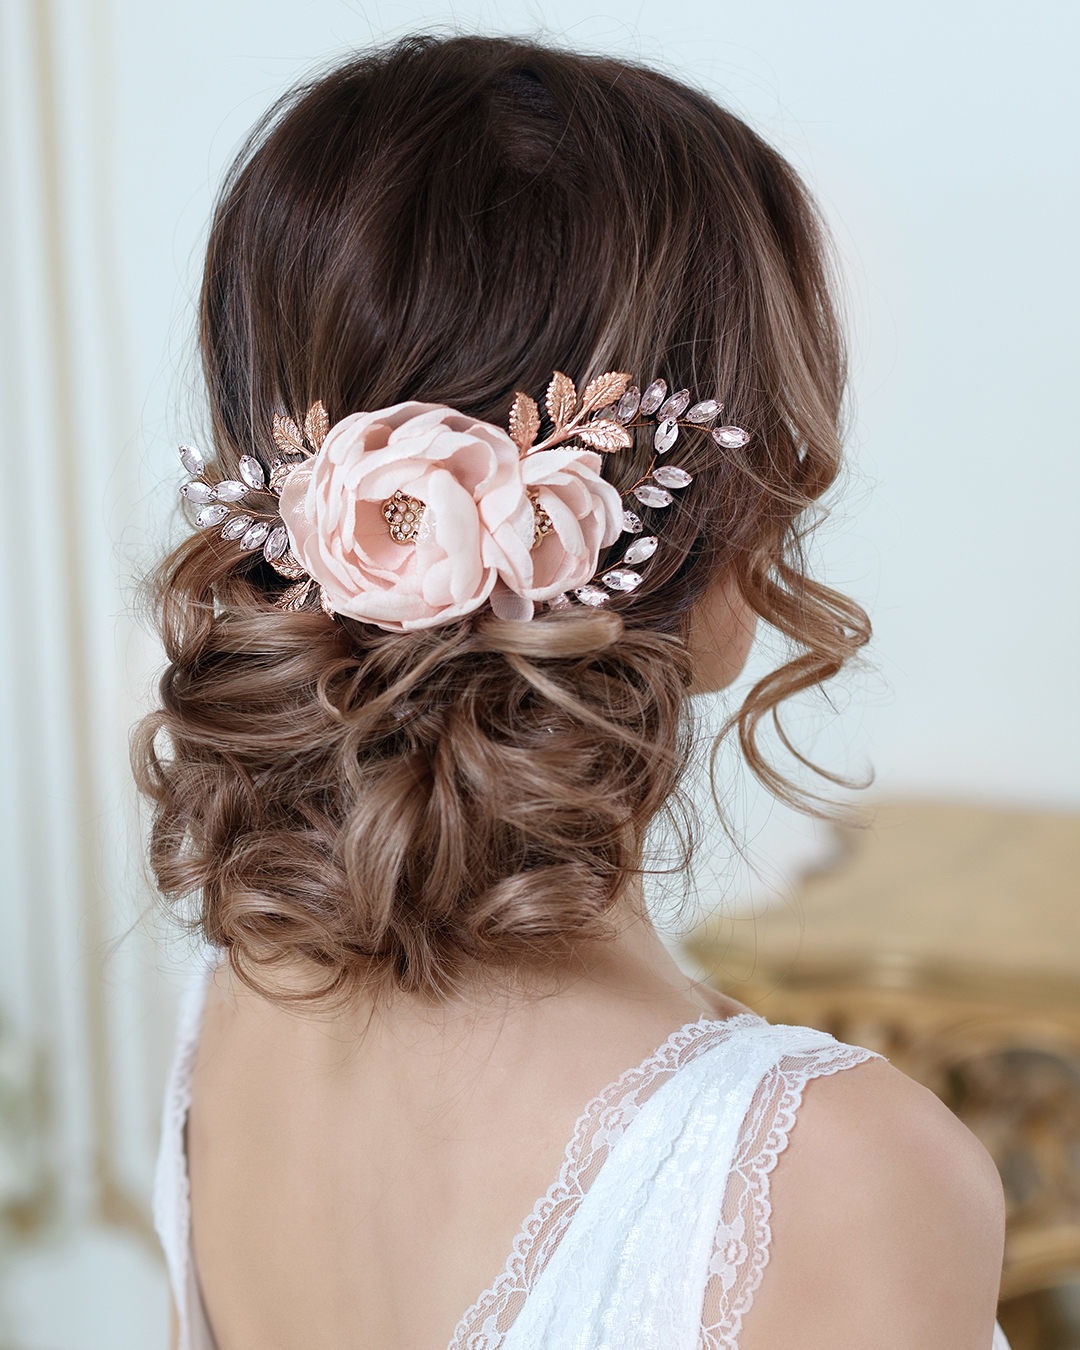 Wedding Styles: 47 Stunning Wedding Hairstyles All Brides Will Love